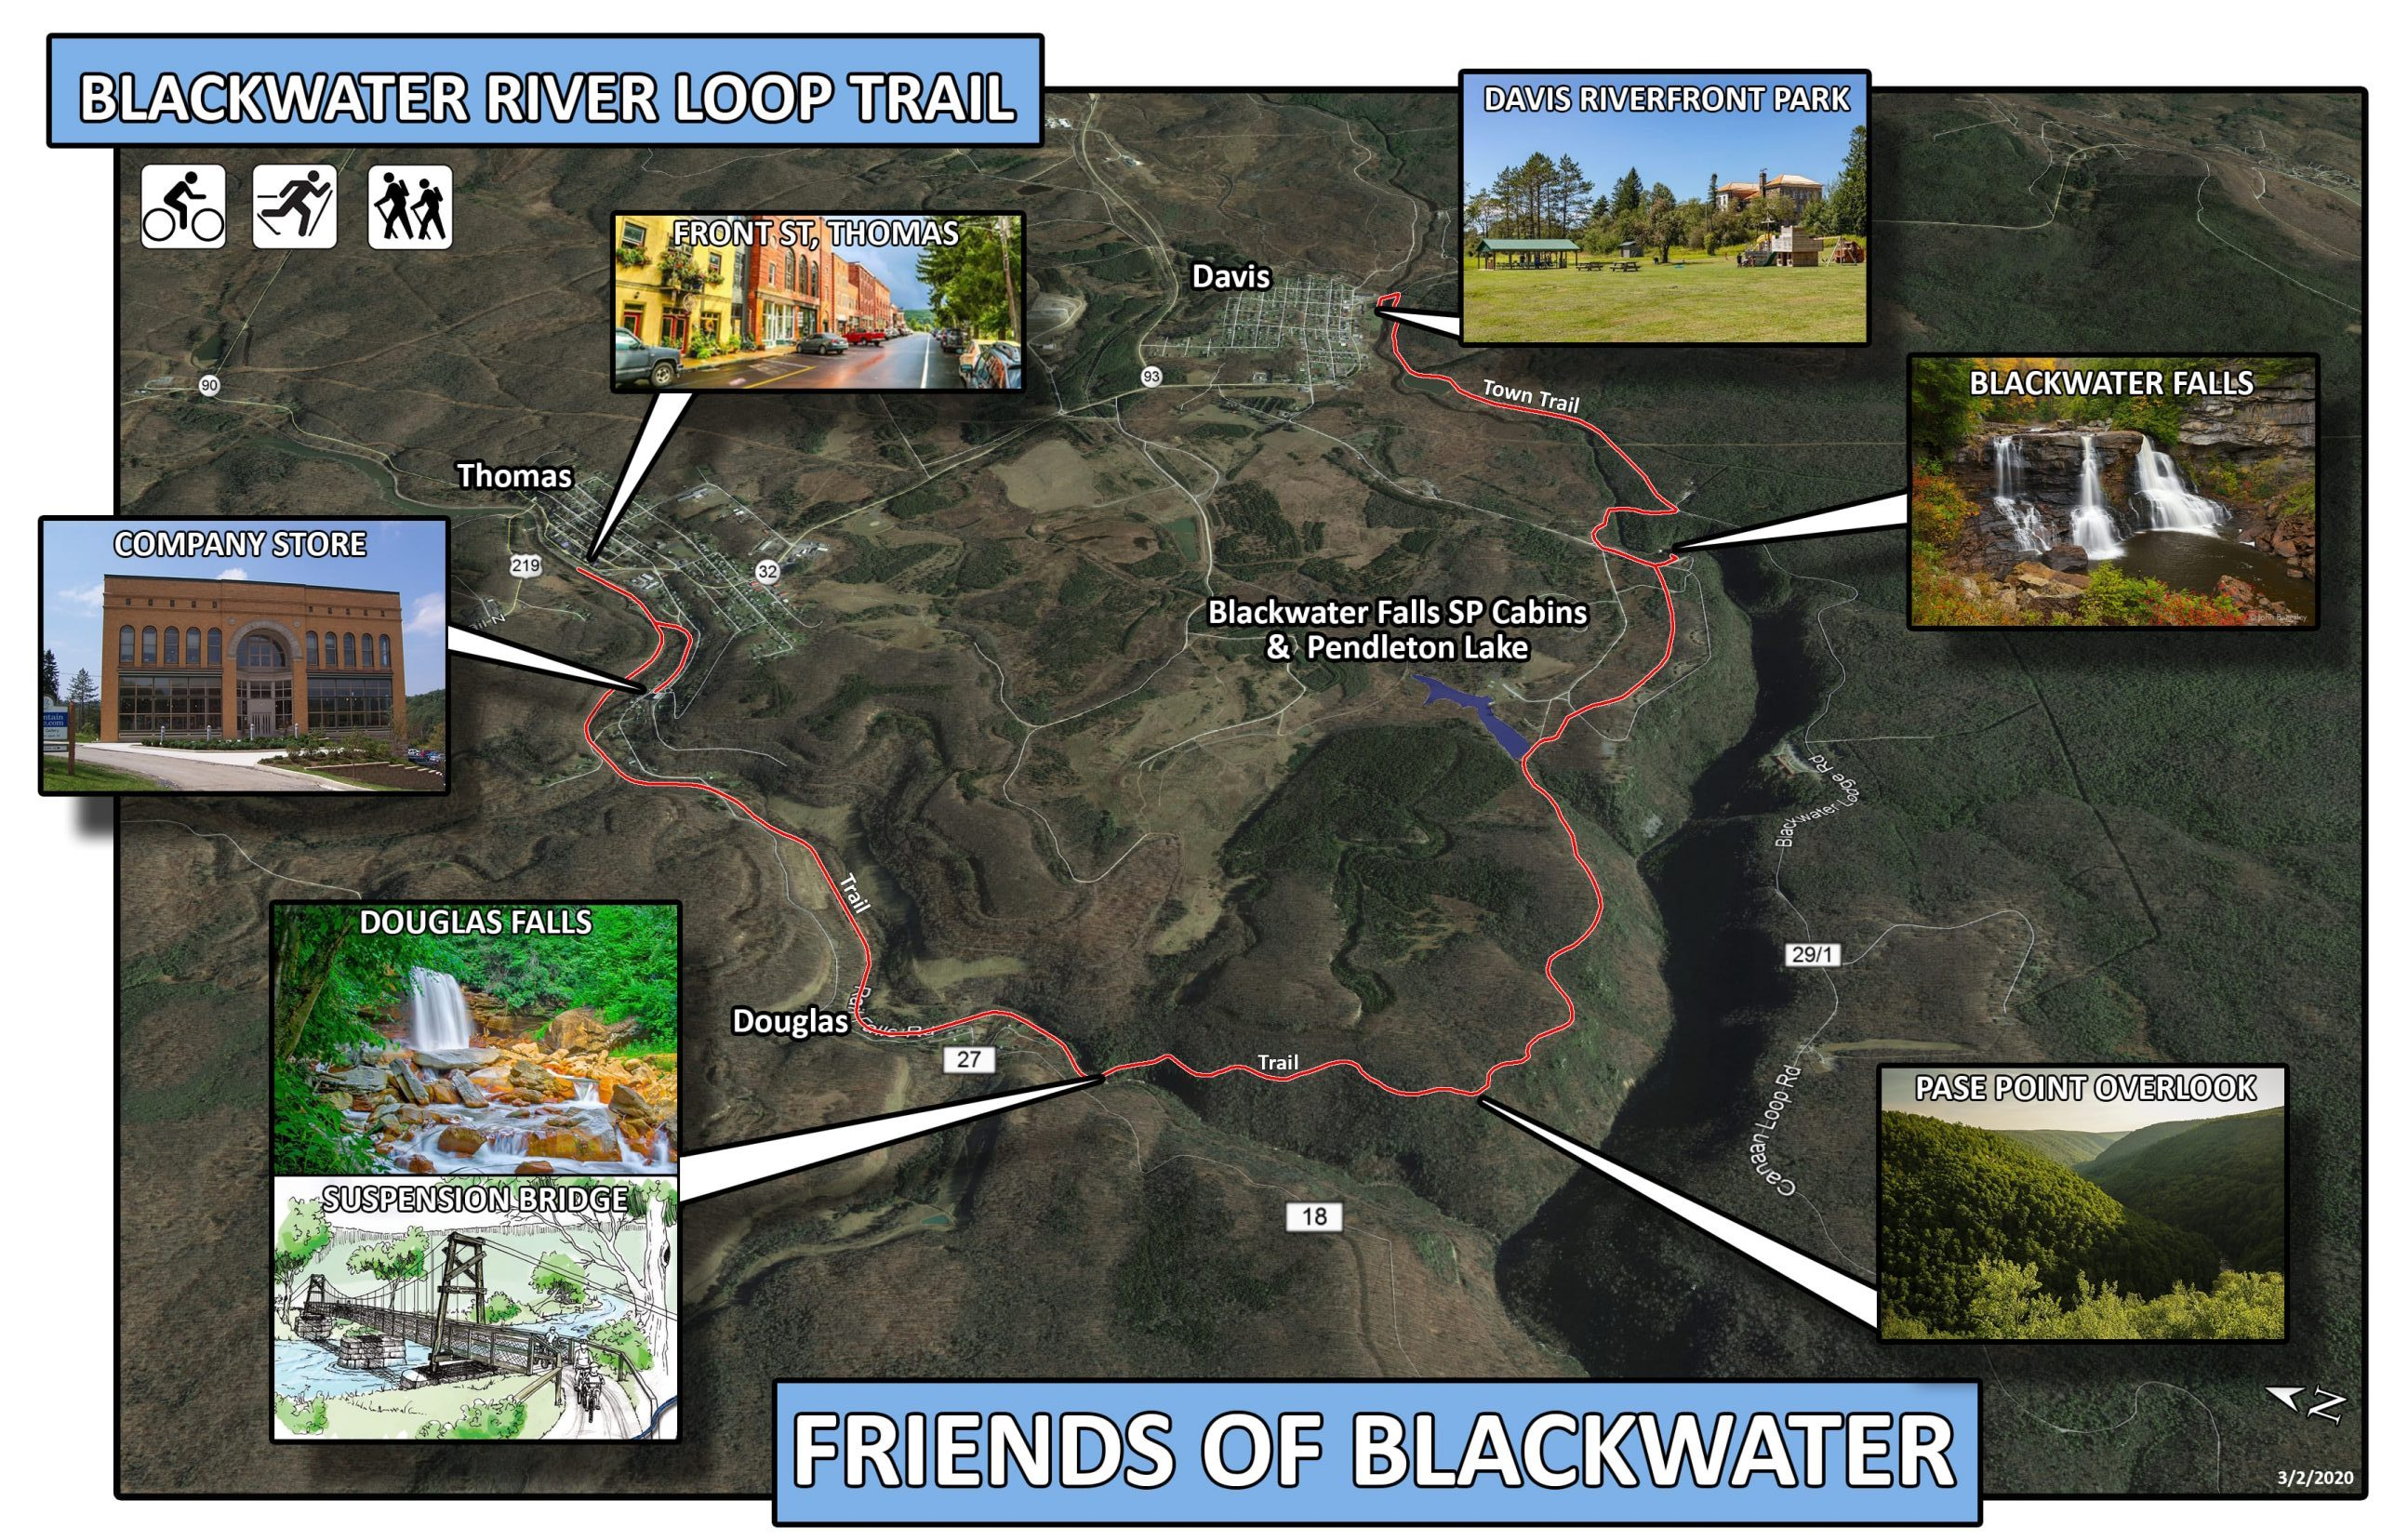 BlackwaterRiverLoopTrailMap5-27-20-1